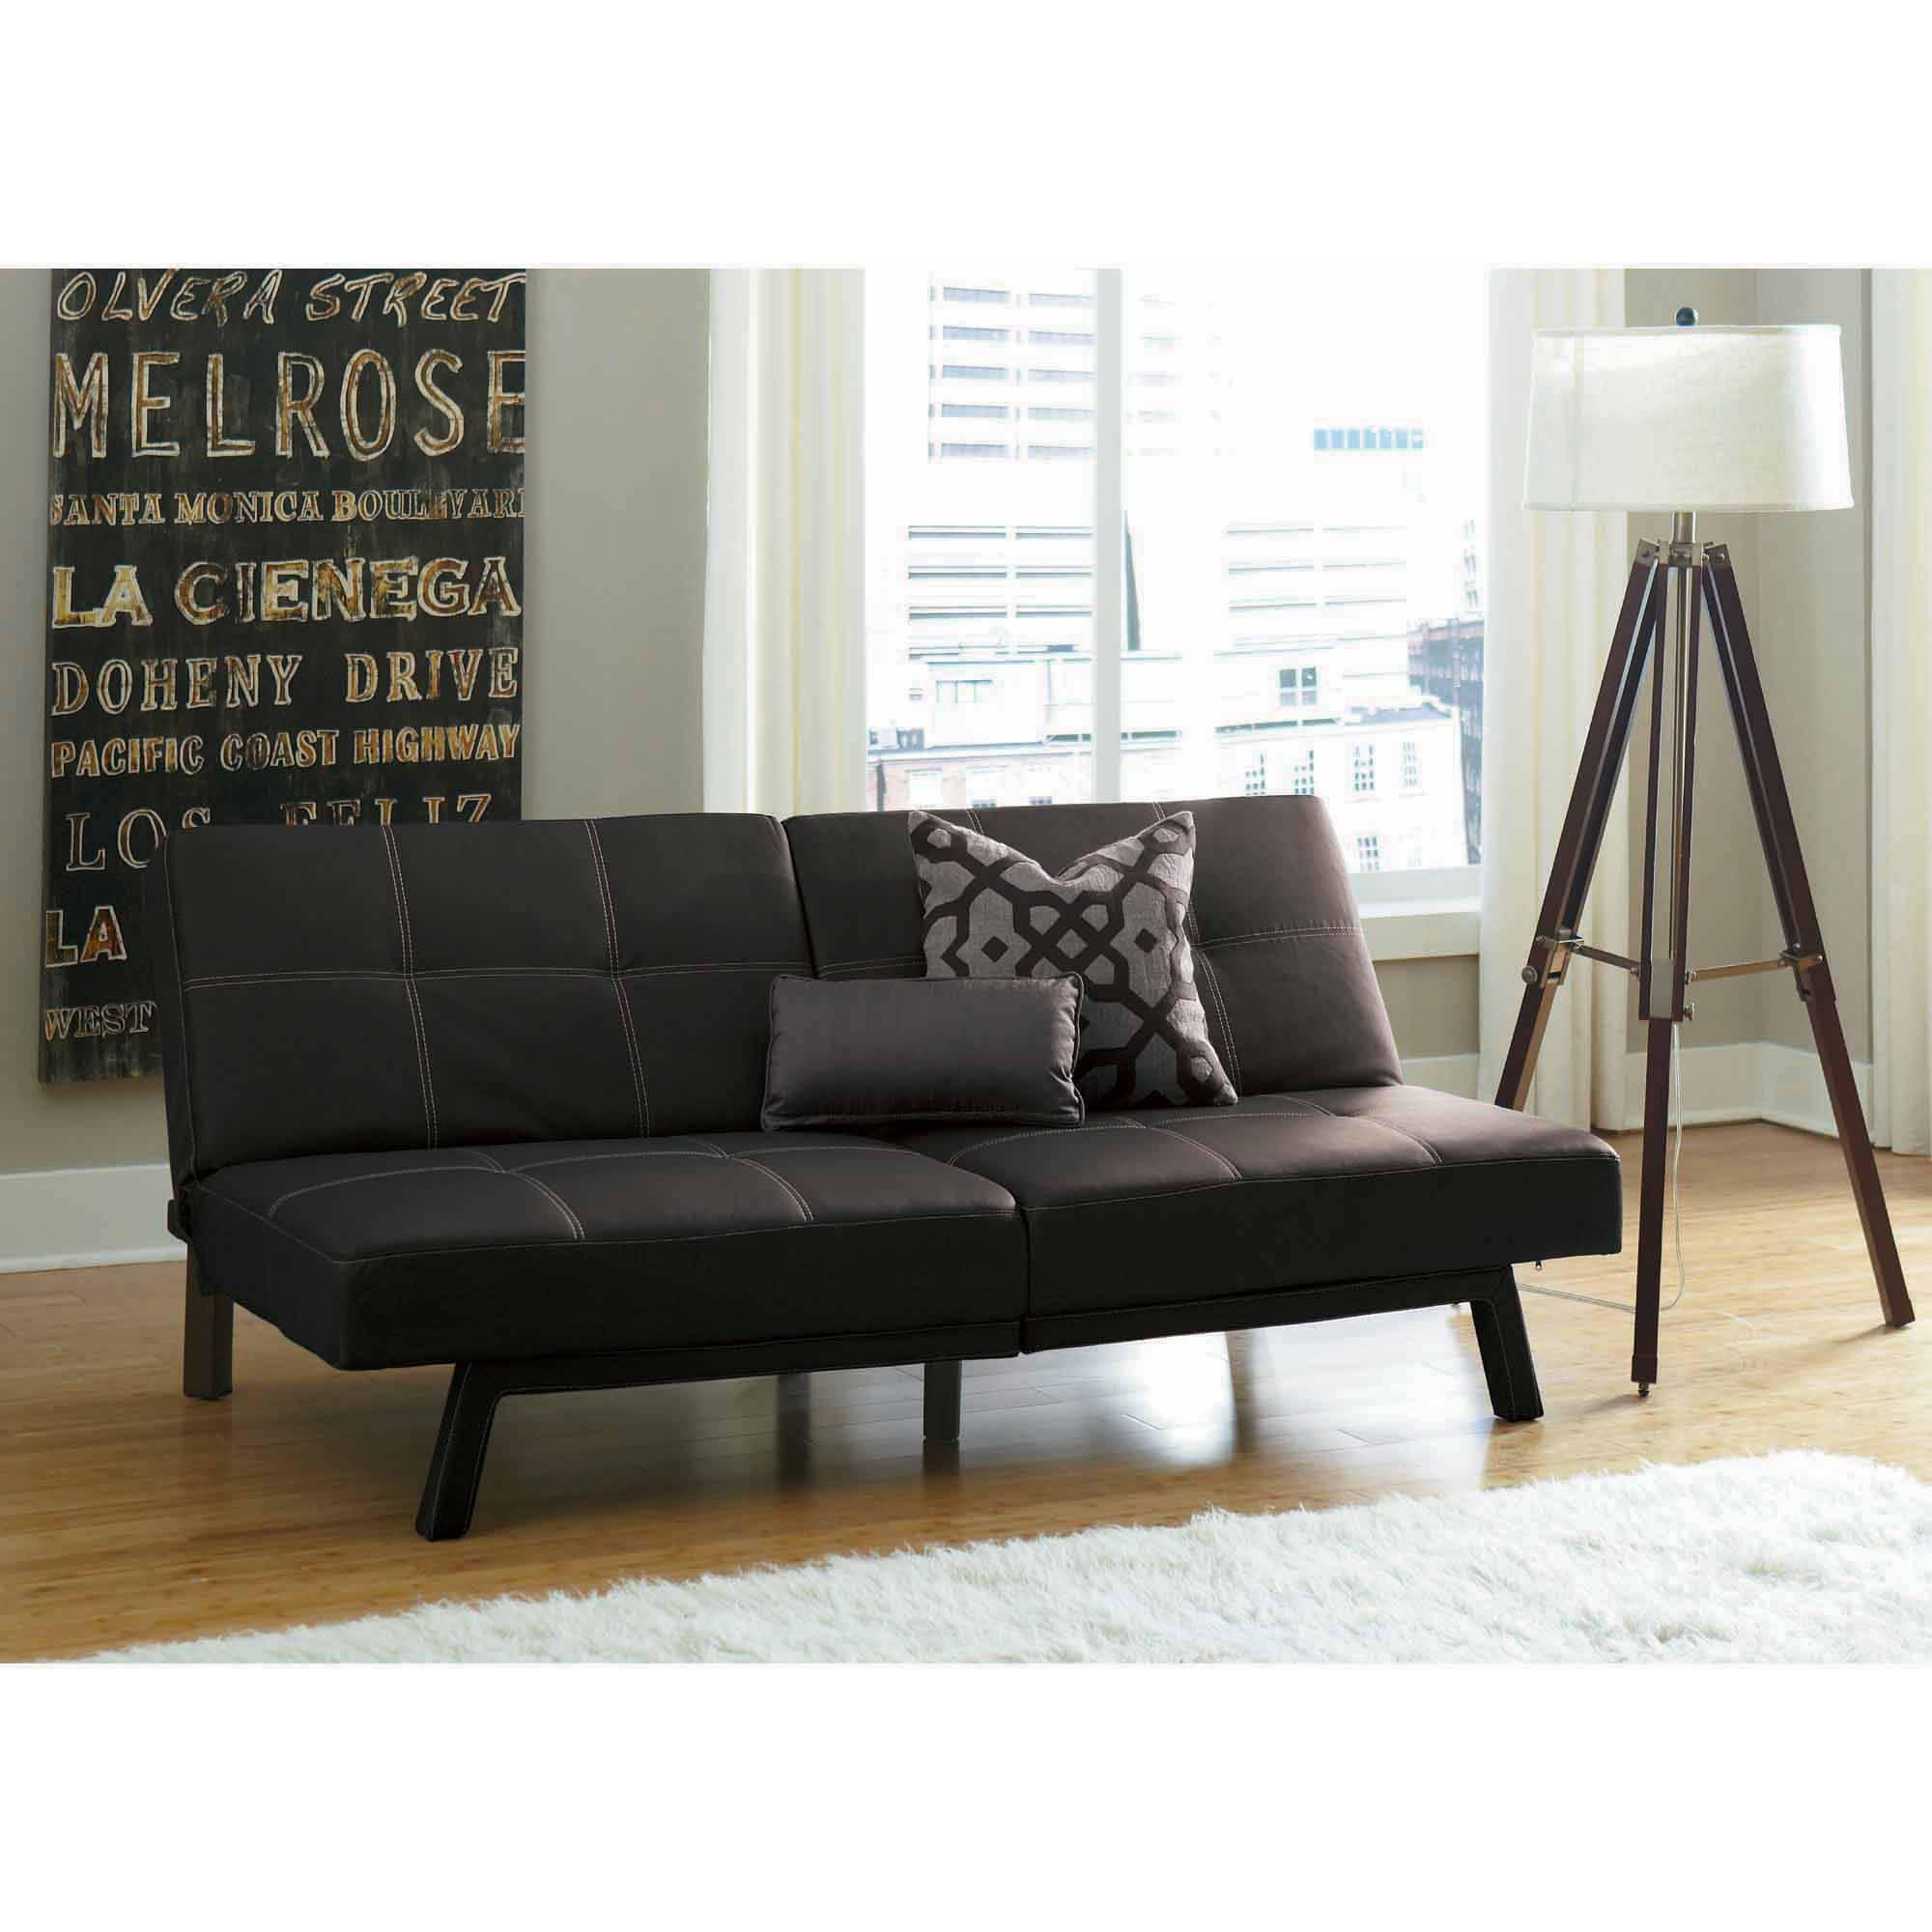 Delaney Split Back Futon Sofa Bed, Multiple Colors – Walmart Intended For Small Black Futon Sofa Beds (View 6 of 20)